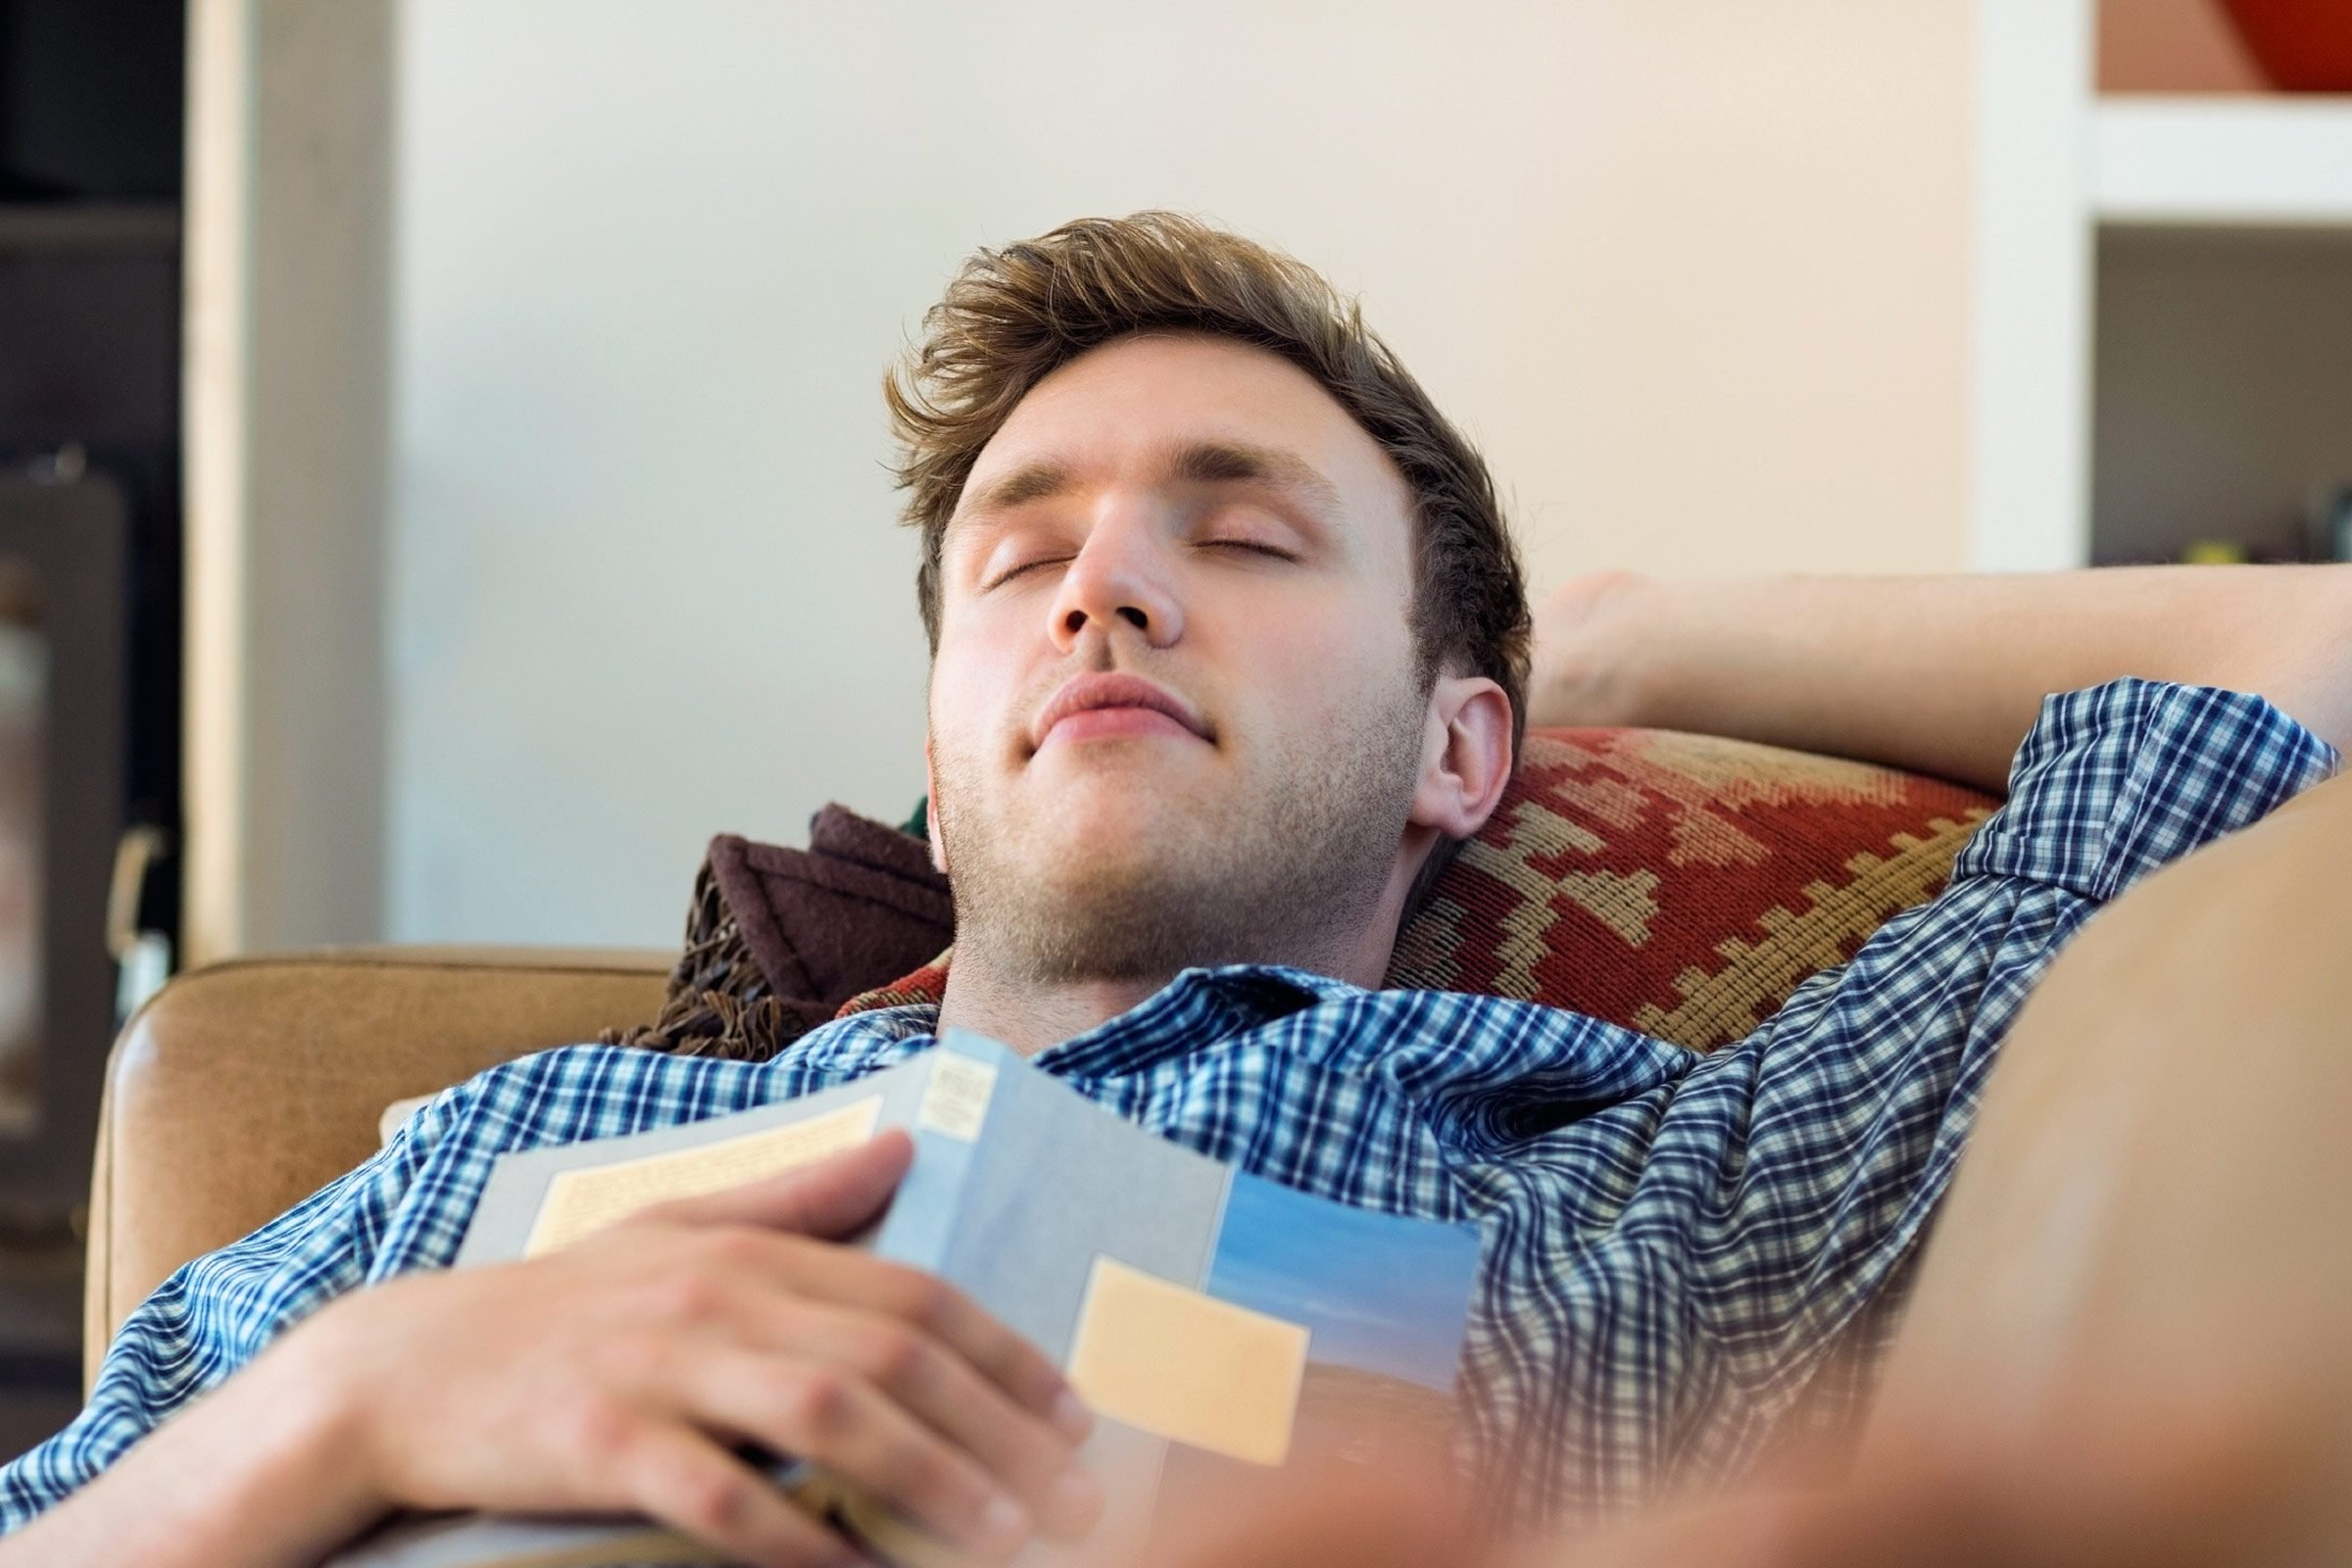 How to Take a Nap: 11 Tricks to Get Rested | Reader's Digest